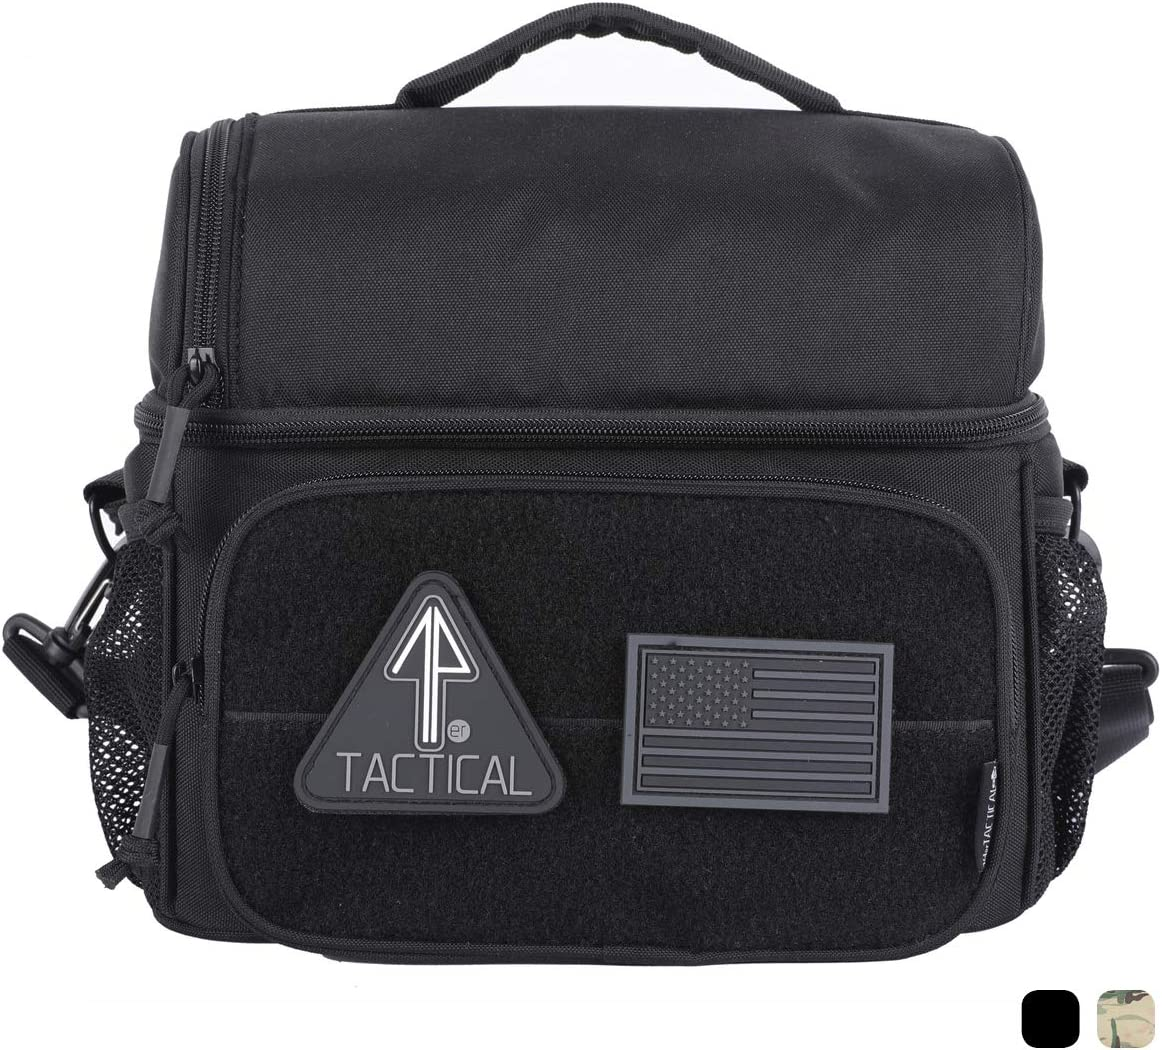 14er Tactical Lunch Bag | Dual Compartment Cooler, Lunch Box | 600D Ballistic Material & YKK Self-Healing Zippers | Flag Patch Panel & MOLLE Compatible PALS | Perfect EDC for Adults & Kids (Black)